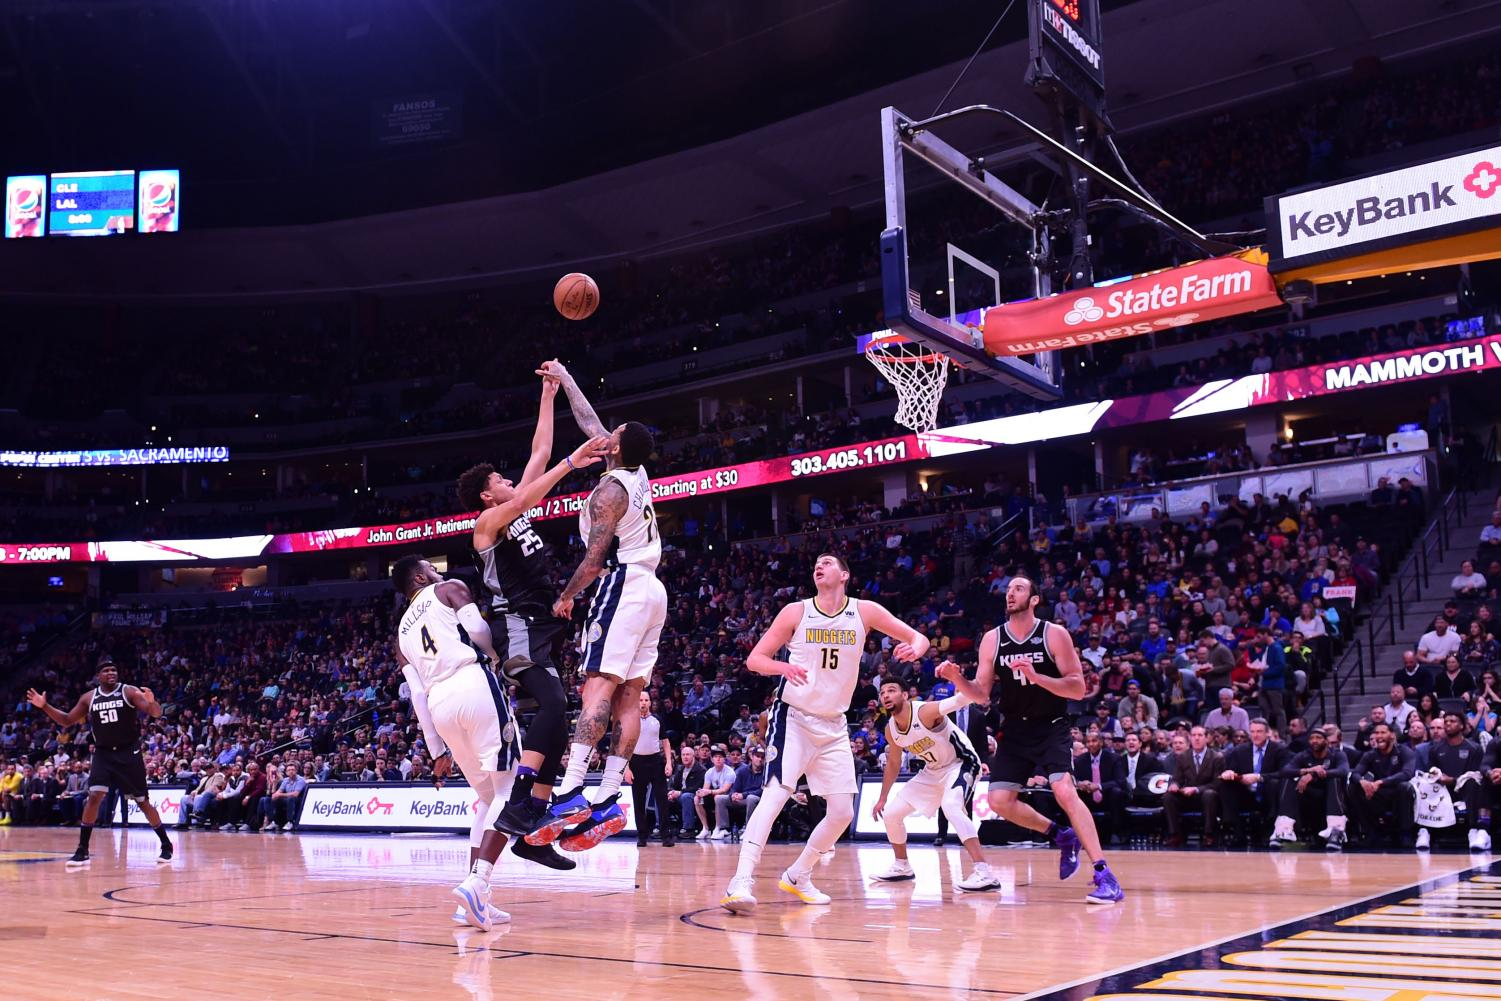 Denver sports teams like the Nuggets are at risk of having most of their season blacked-out.